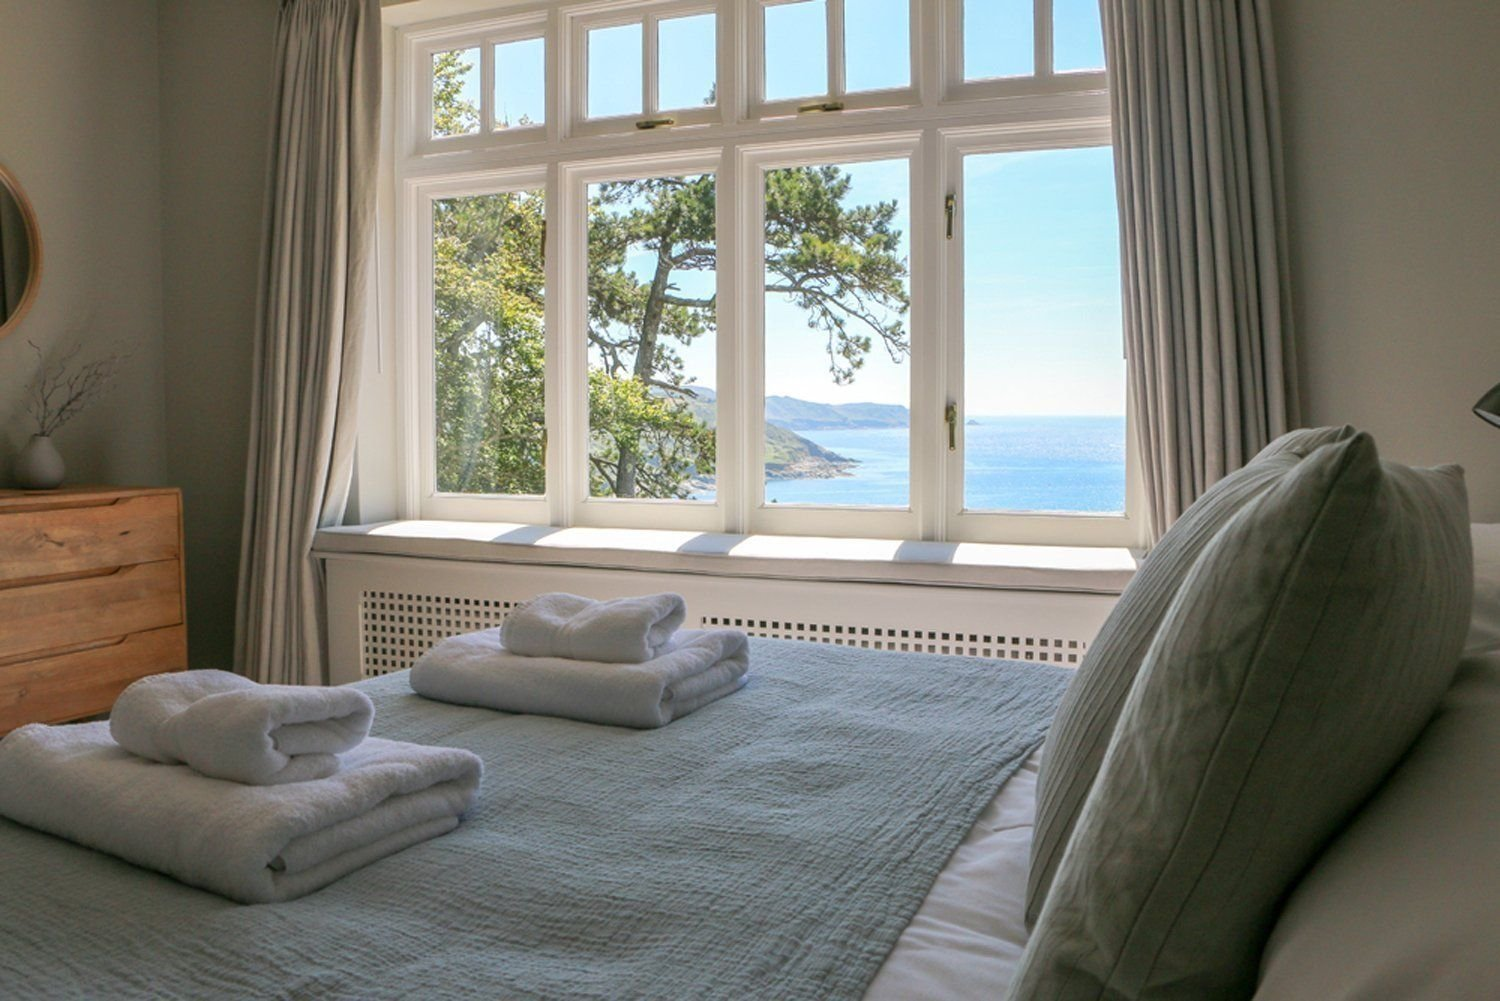 Housekeeping and cleaning services in Salcombe and the South Hams